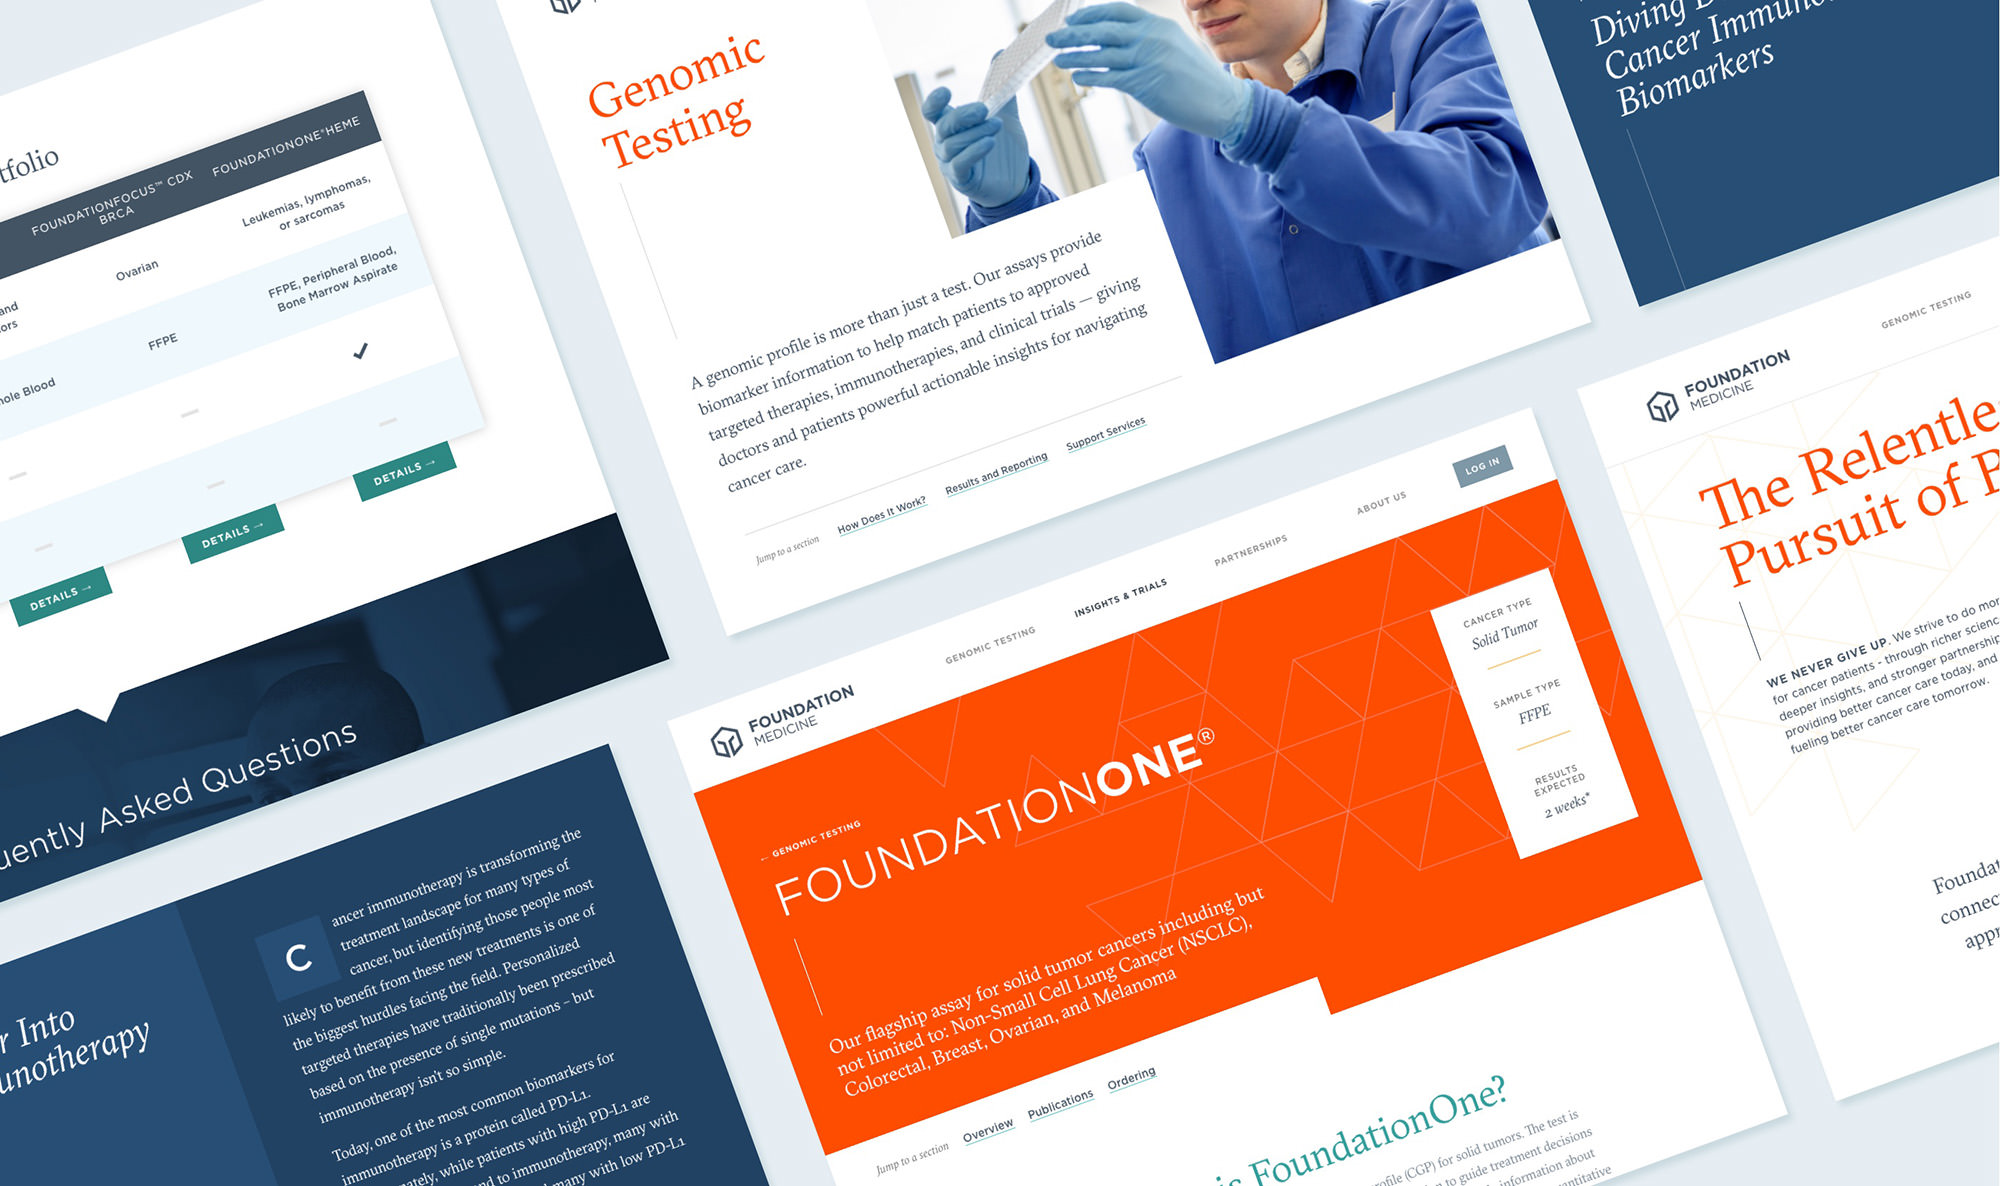 Tiled grid of screenshots from the homepage, Genomic Testing page, and FoundationOne page